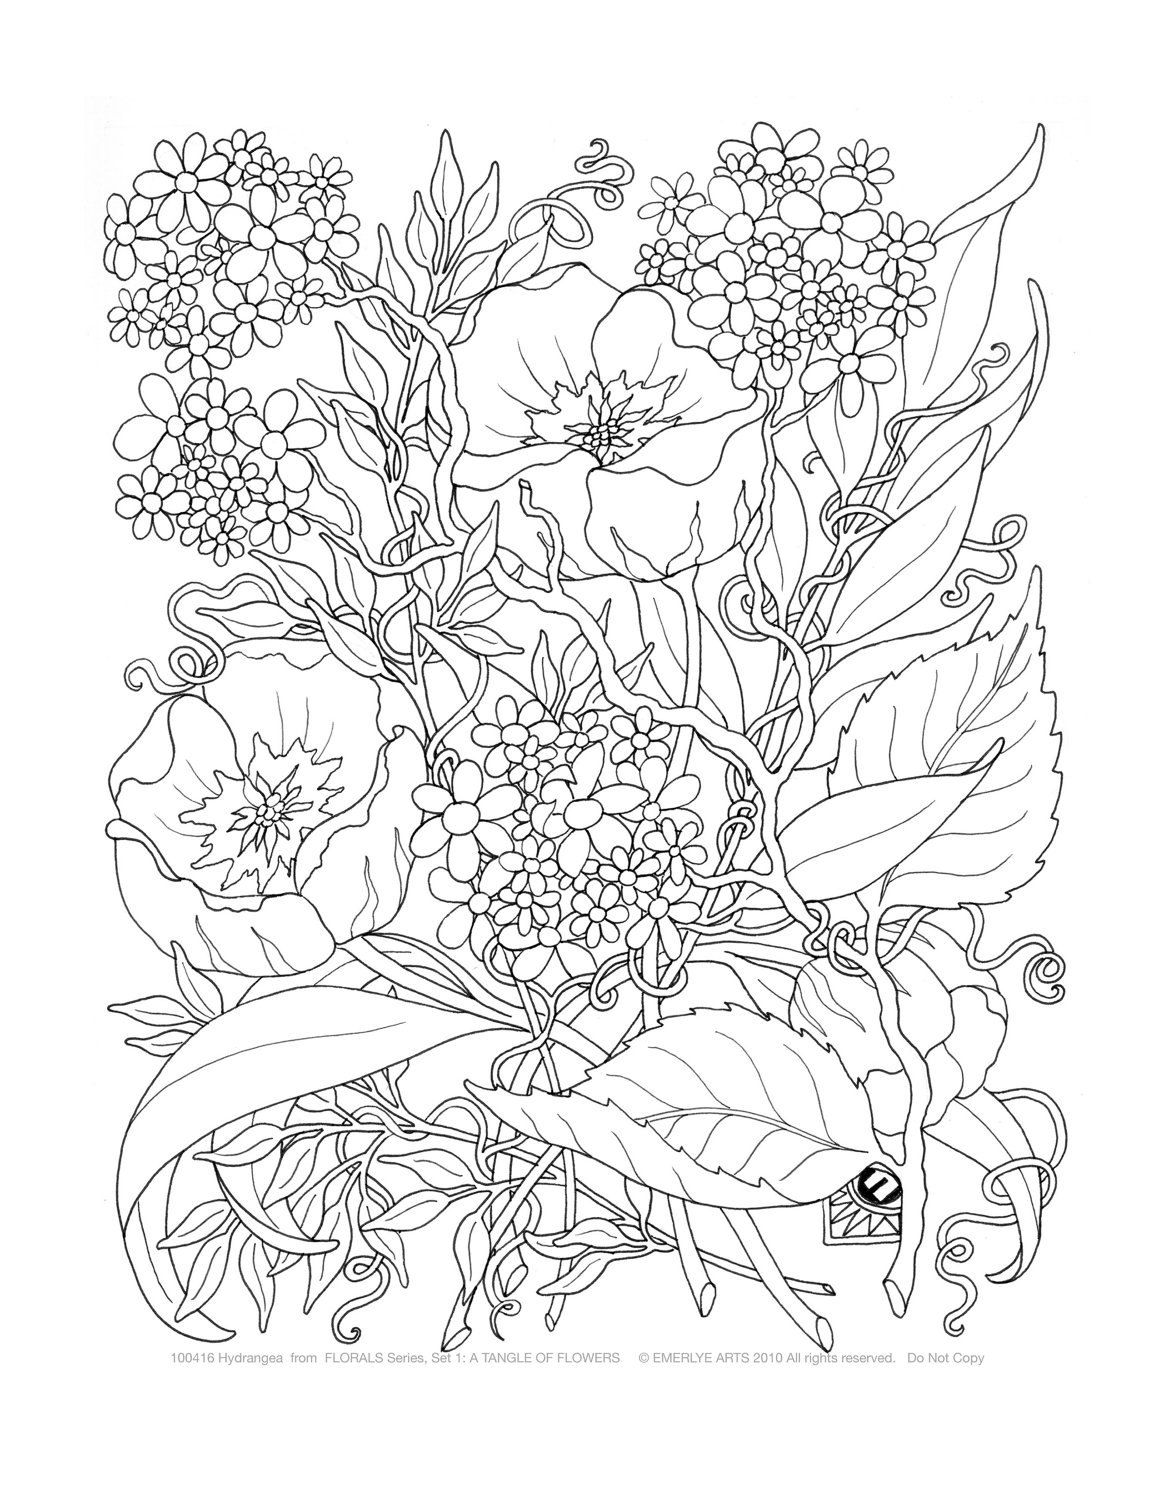 free printable coloring pages for adults and kids difficult coloring pages for older children coloring home for printable and coloring pages kids free adults